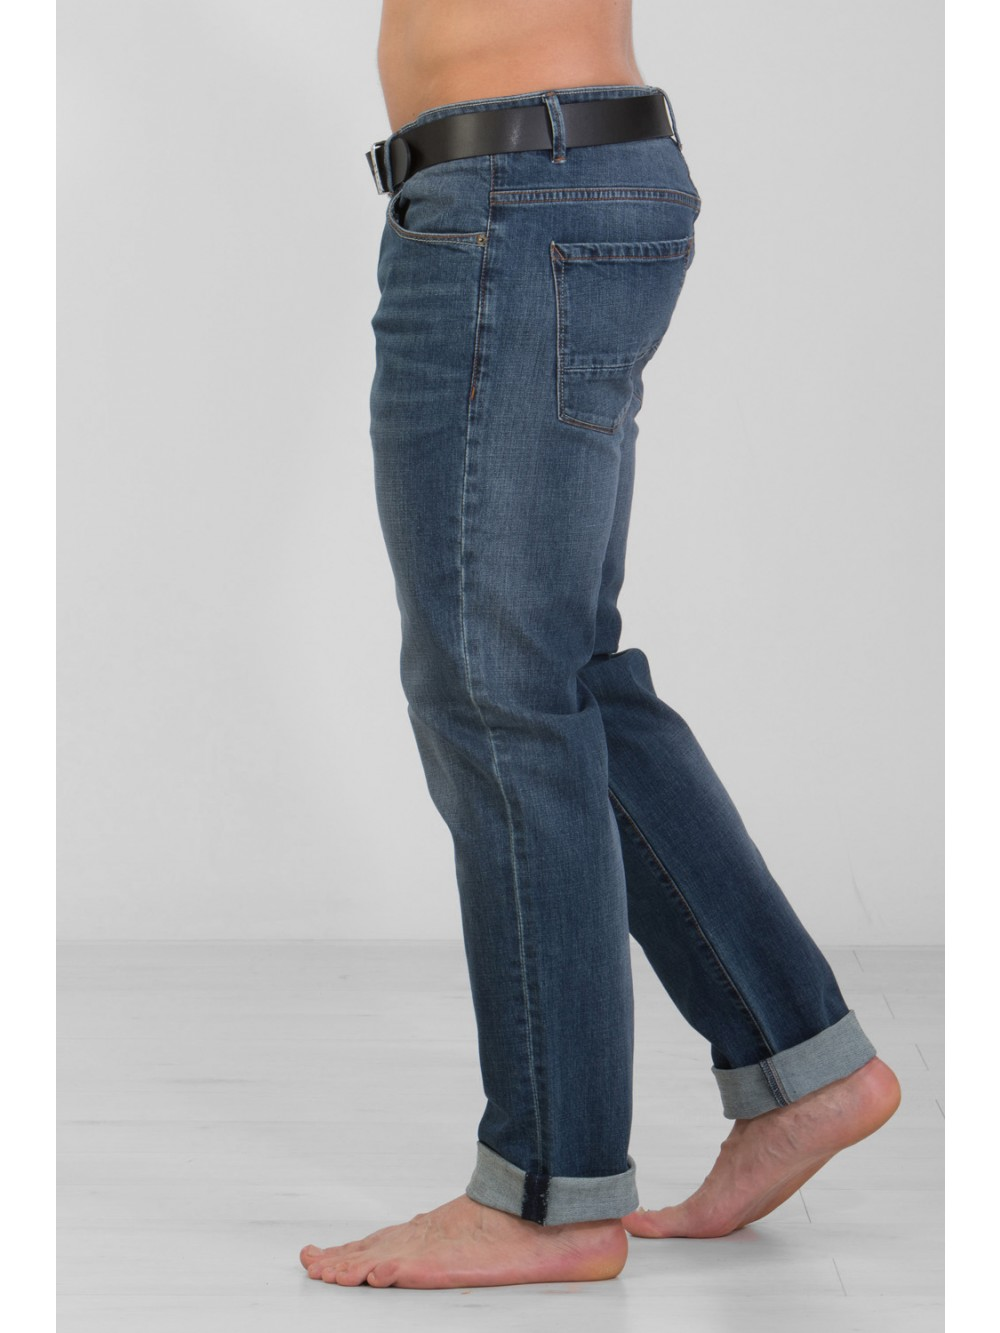 Jeans JSM277 stretch dr.blue